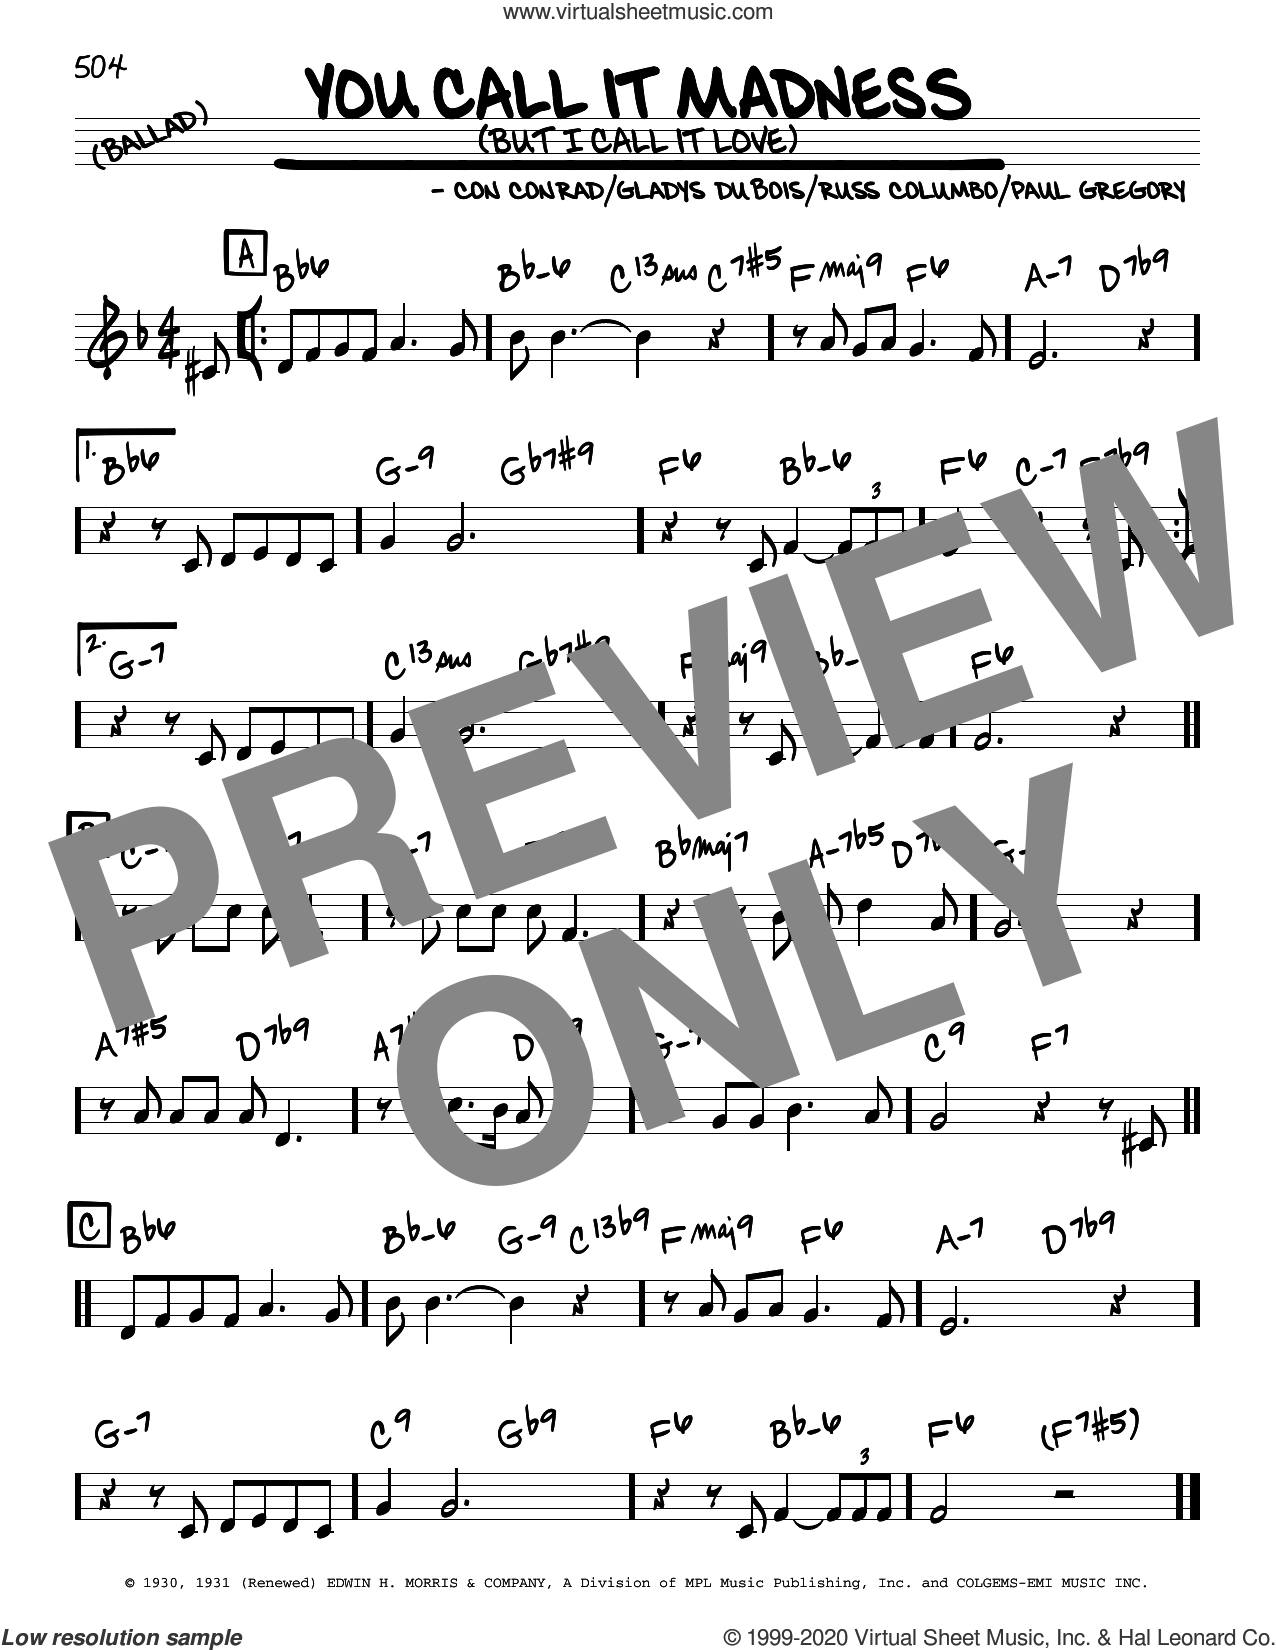 You Call It Madness (But I Call It Love) sheet music for voice and other instruments (real book) by Nat King Cole, Con Conrad, Gladys DuBois, Paul Gregory and Russ Columbo, intermediate skill level